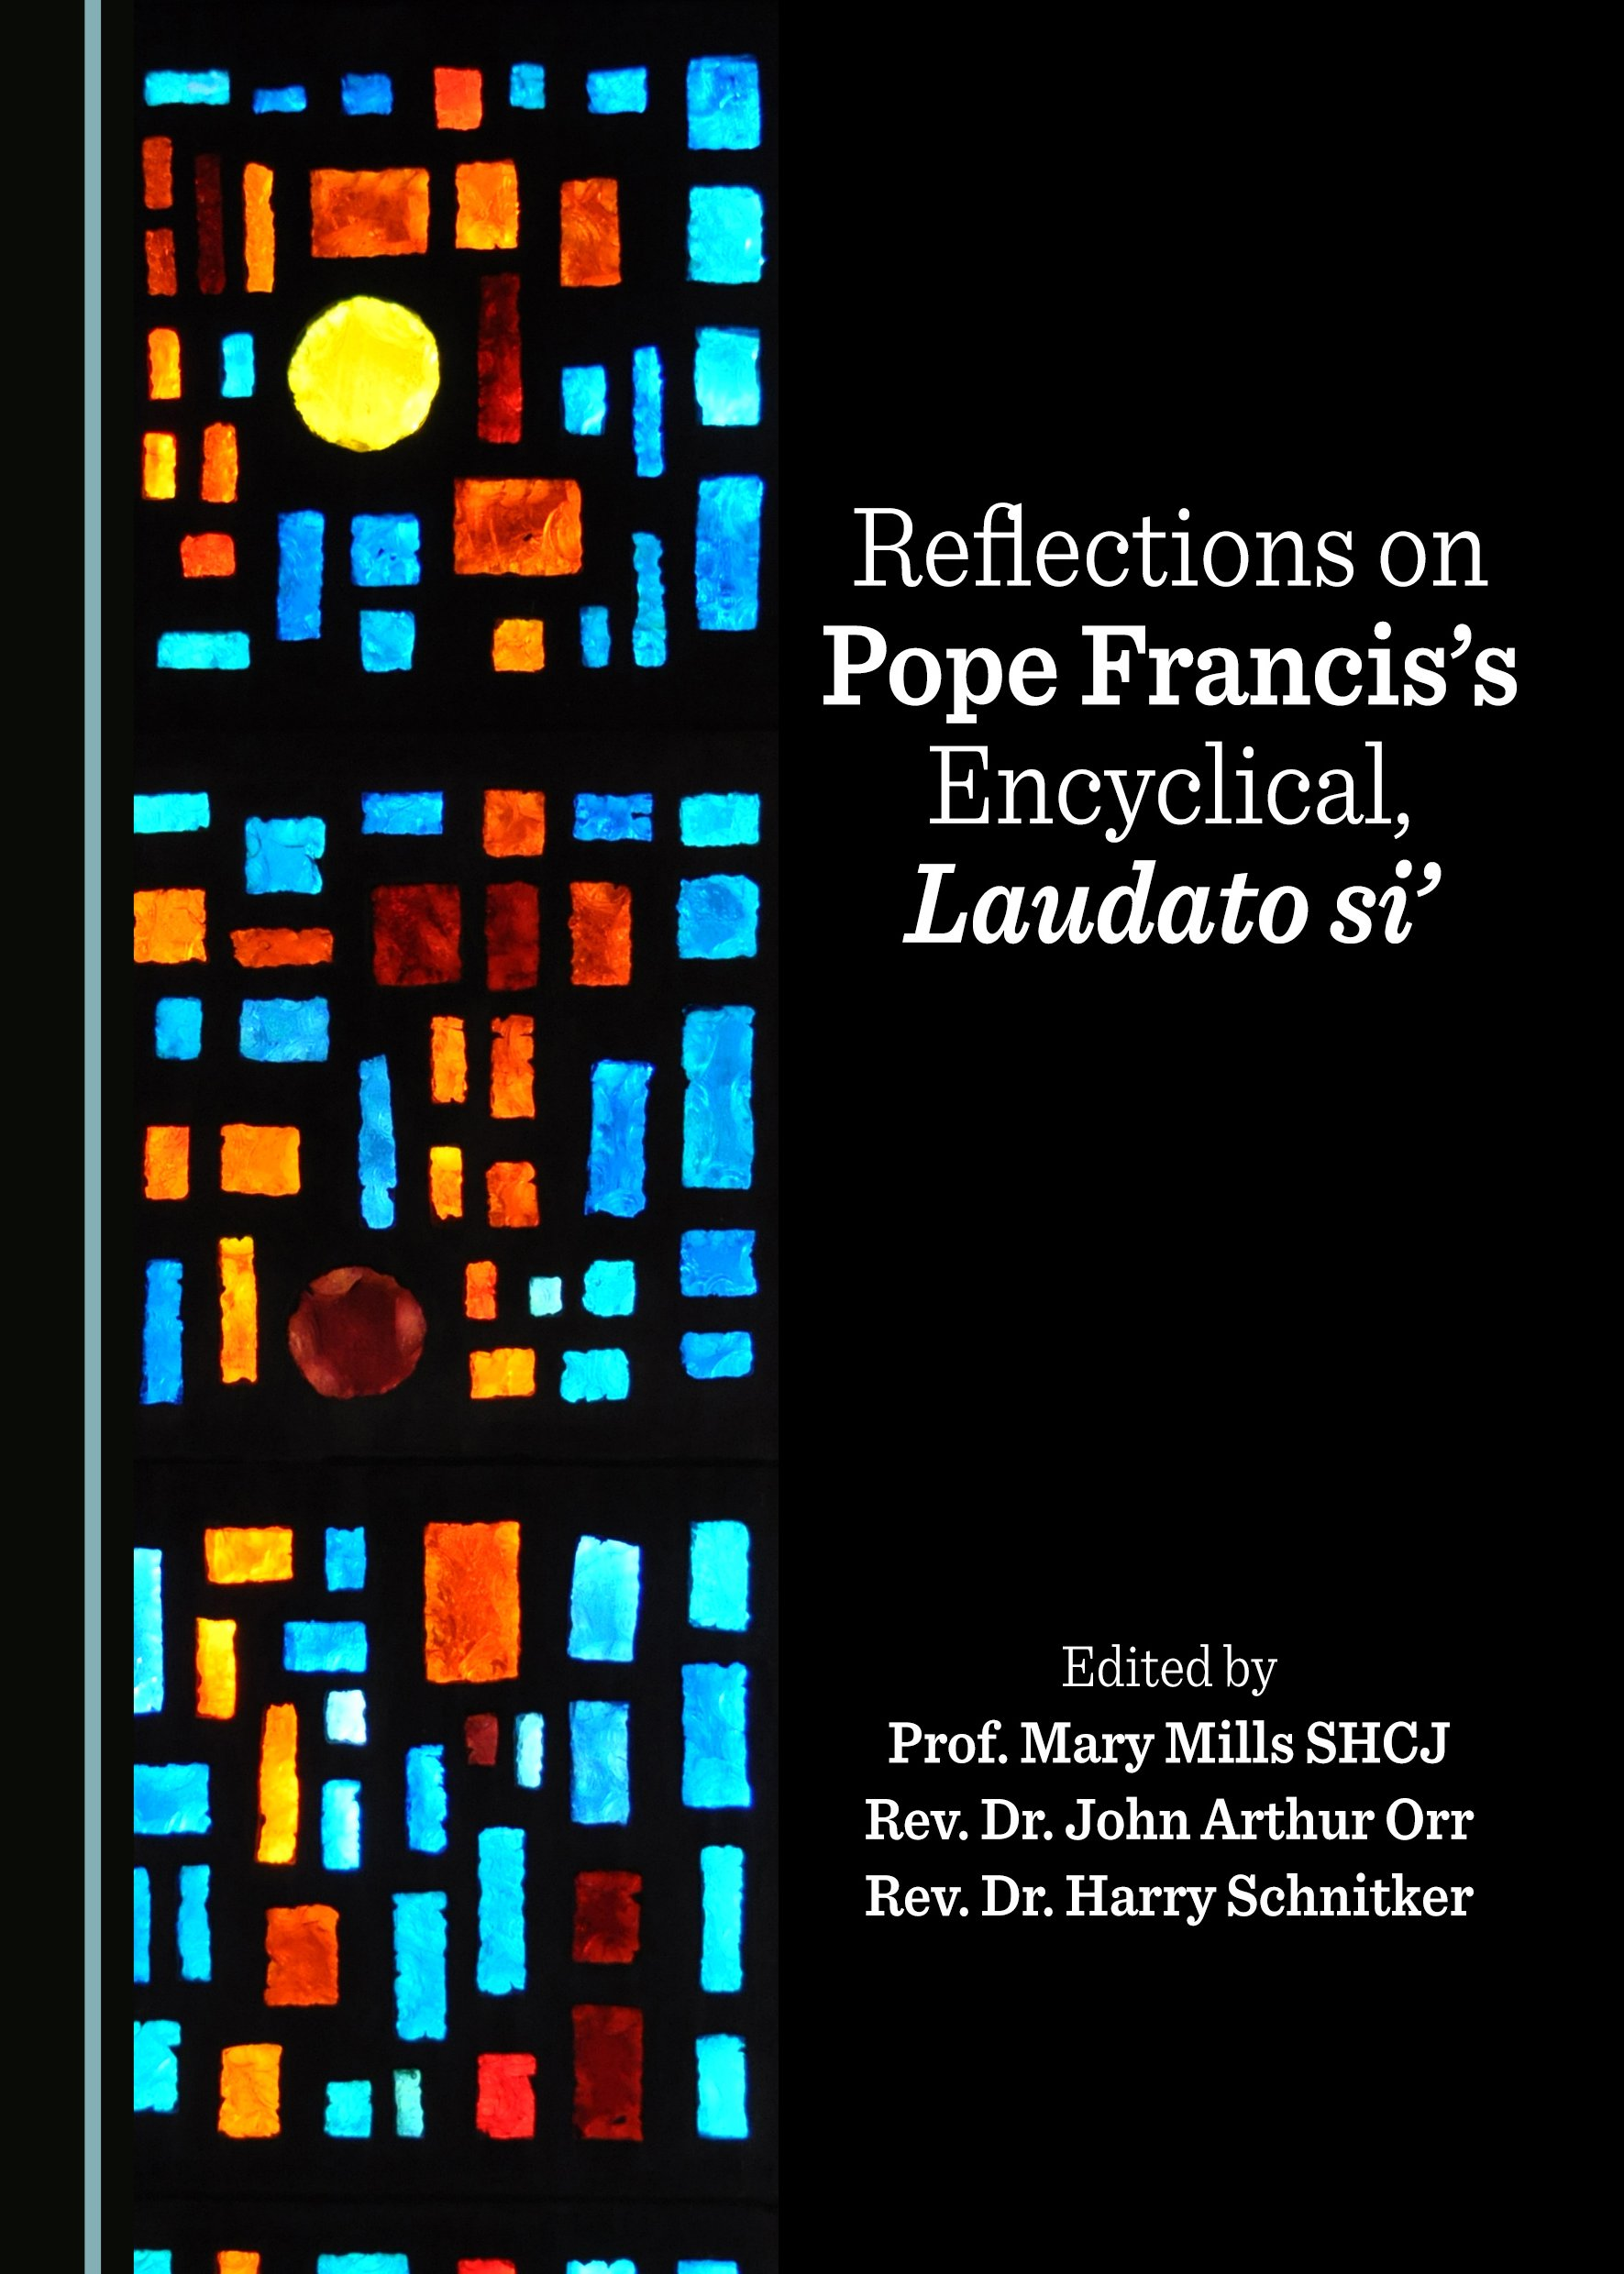 Reflections on Pope Francis's Encyclical, Laudato si'